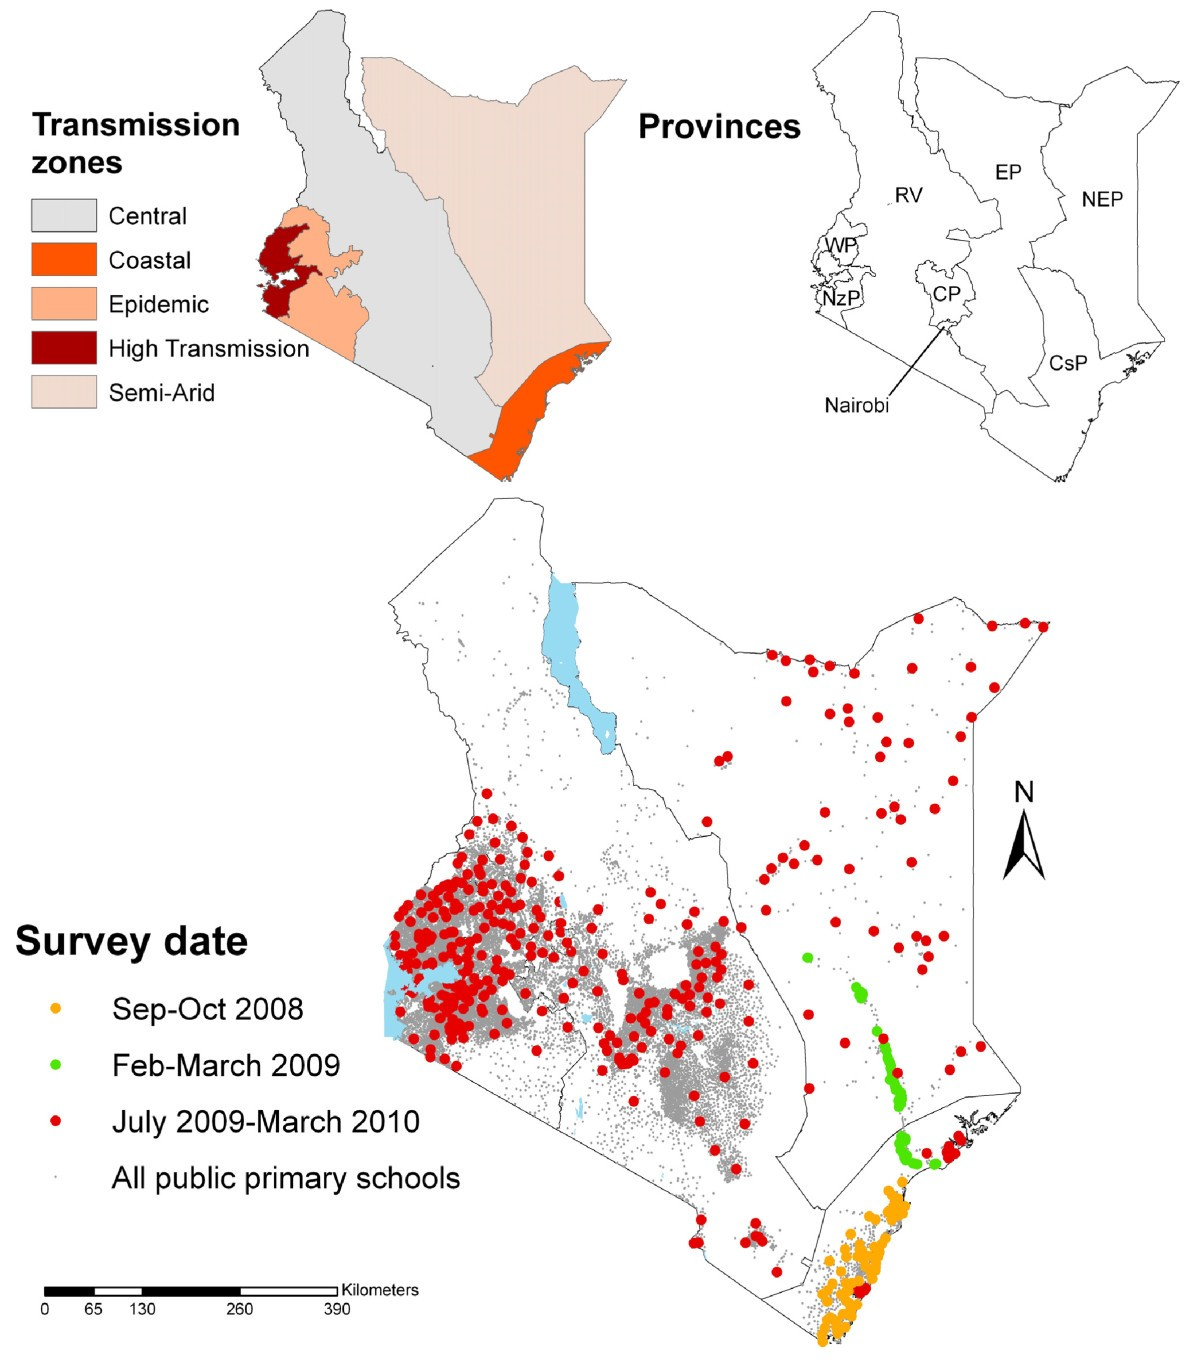 Implementing School Malaria Surveys In Kenya Towards A National Parts Diagram Moreover Microsoft Laptop Puter Clip Art On Of Figure 2